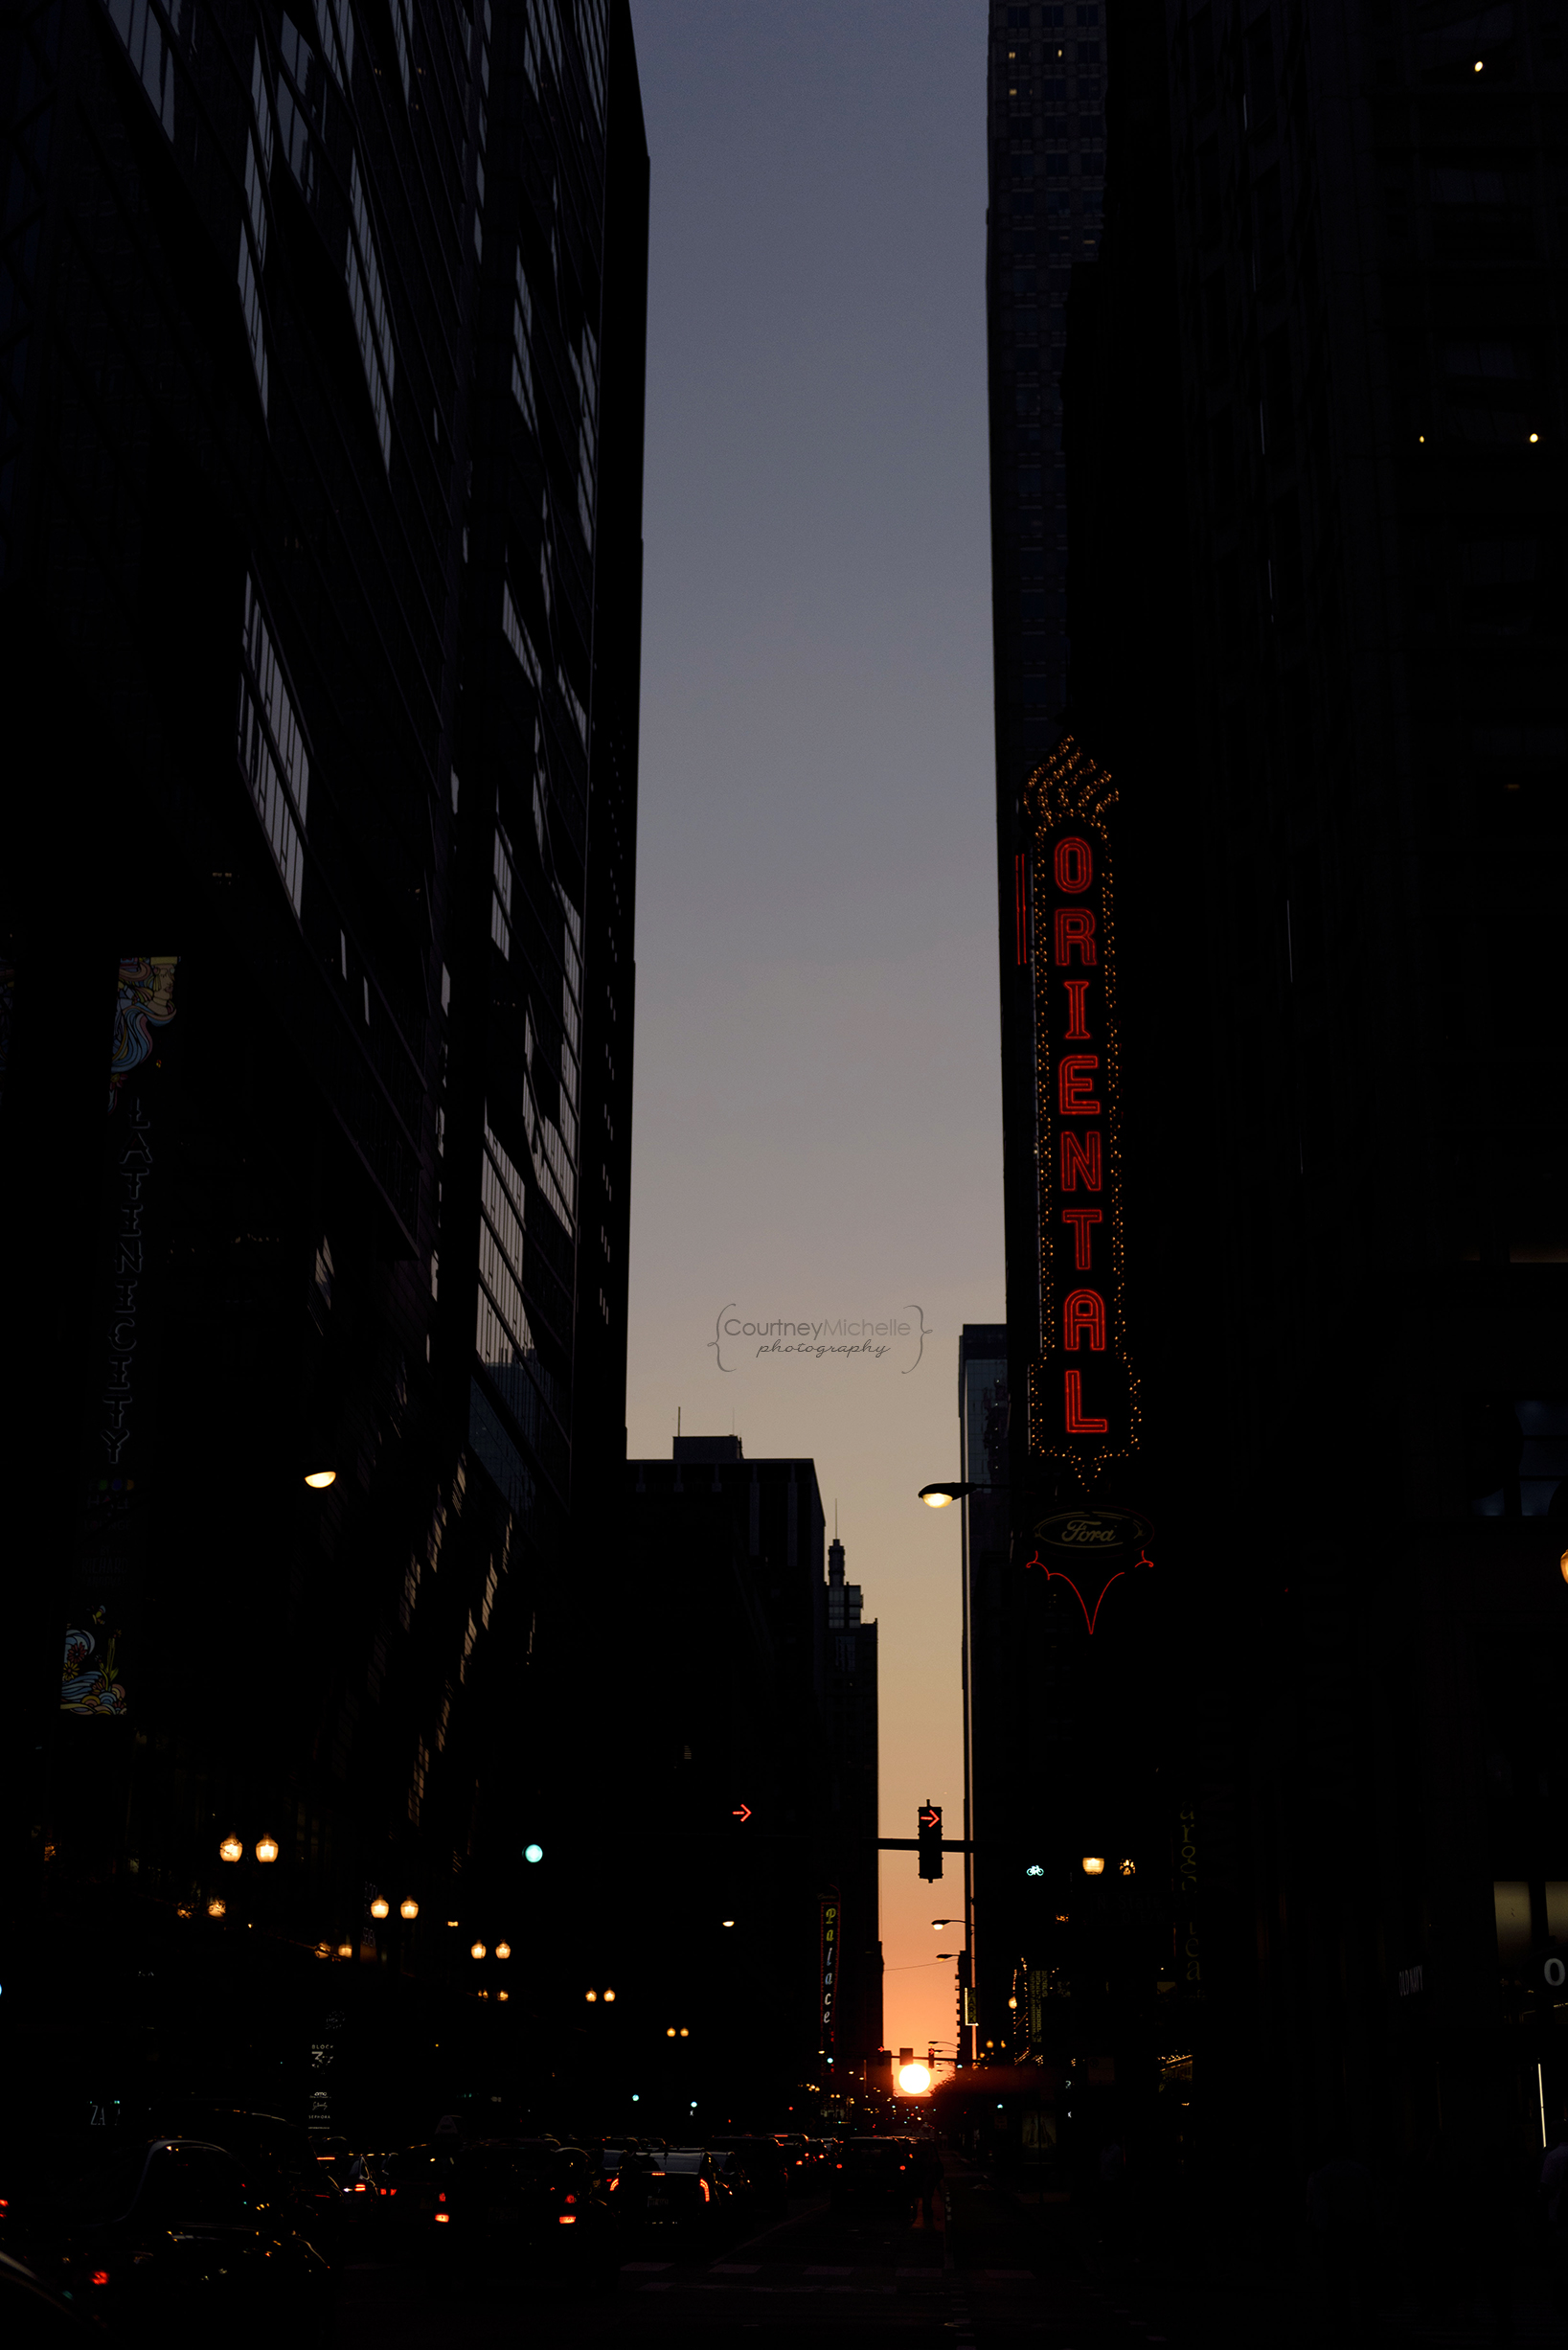 Chicagohenge_oriental_theater_state_street_the loop_chicago_downtown_chicago_©COPYRIGHTCMP-7731.jpg